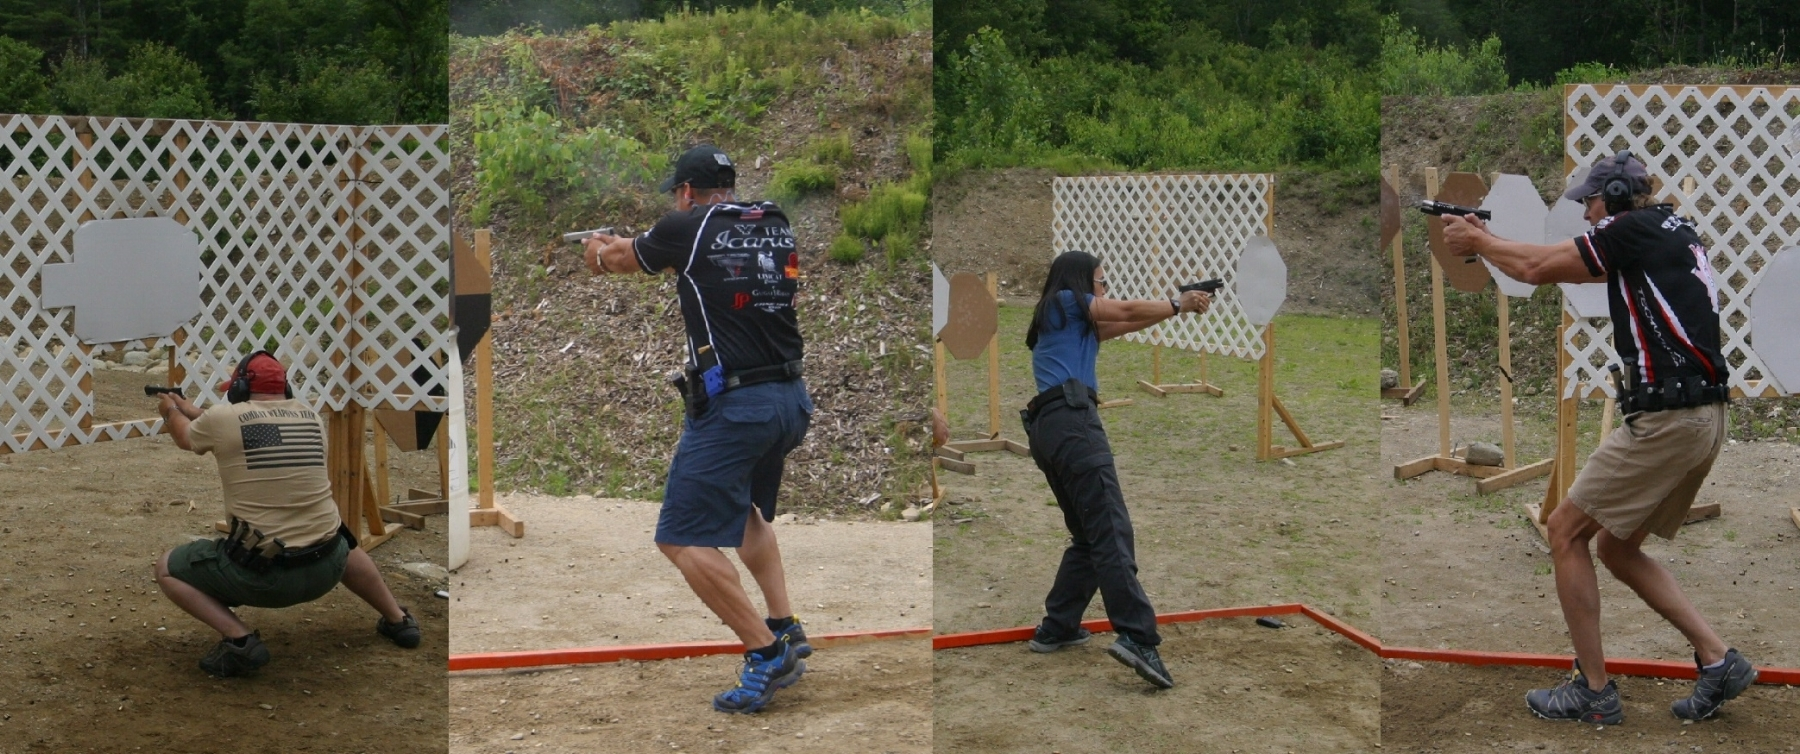 a few mass classic 2015 shooters in action during the match